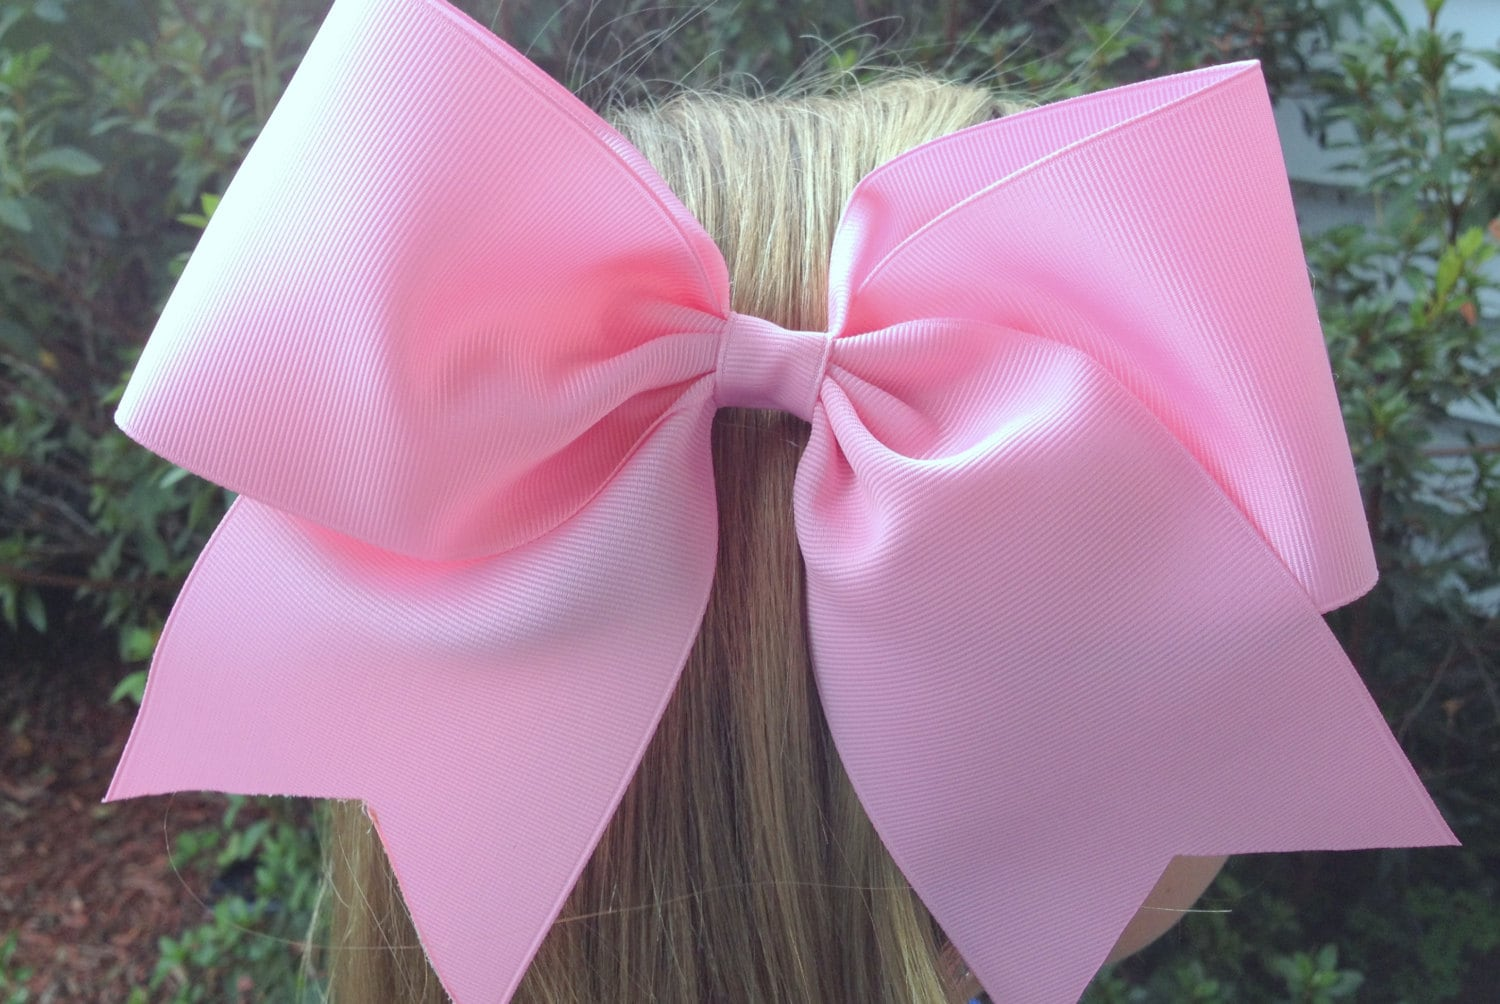 Large Softball Bows Cheer Bow Large M2m With 3